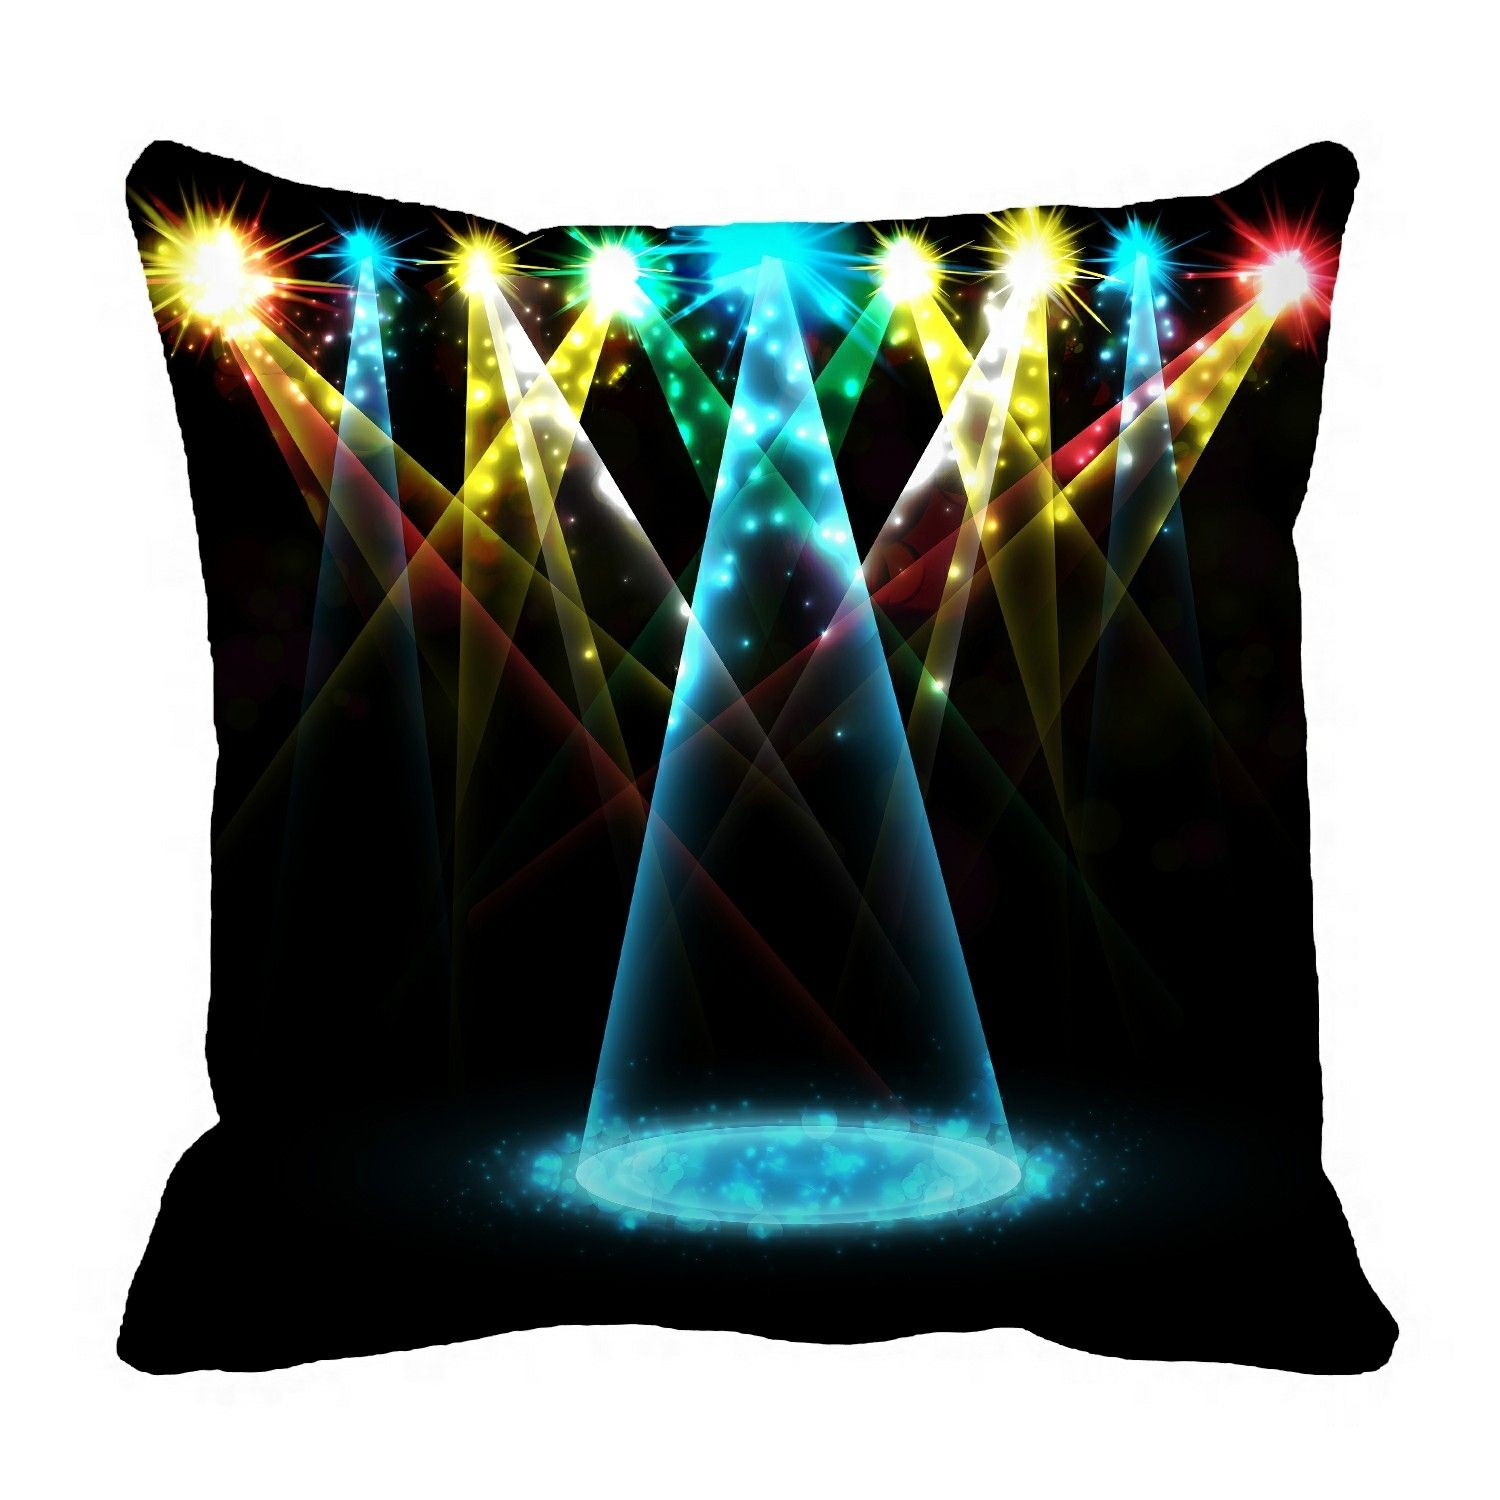 stage spotlights Pillow?Case?Pillow?Cover?Cushion?Cover